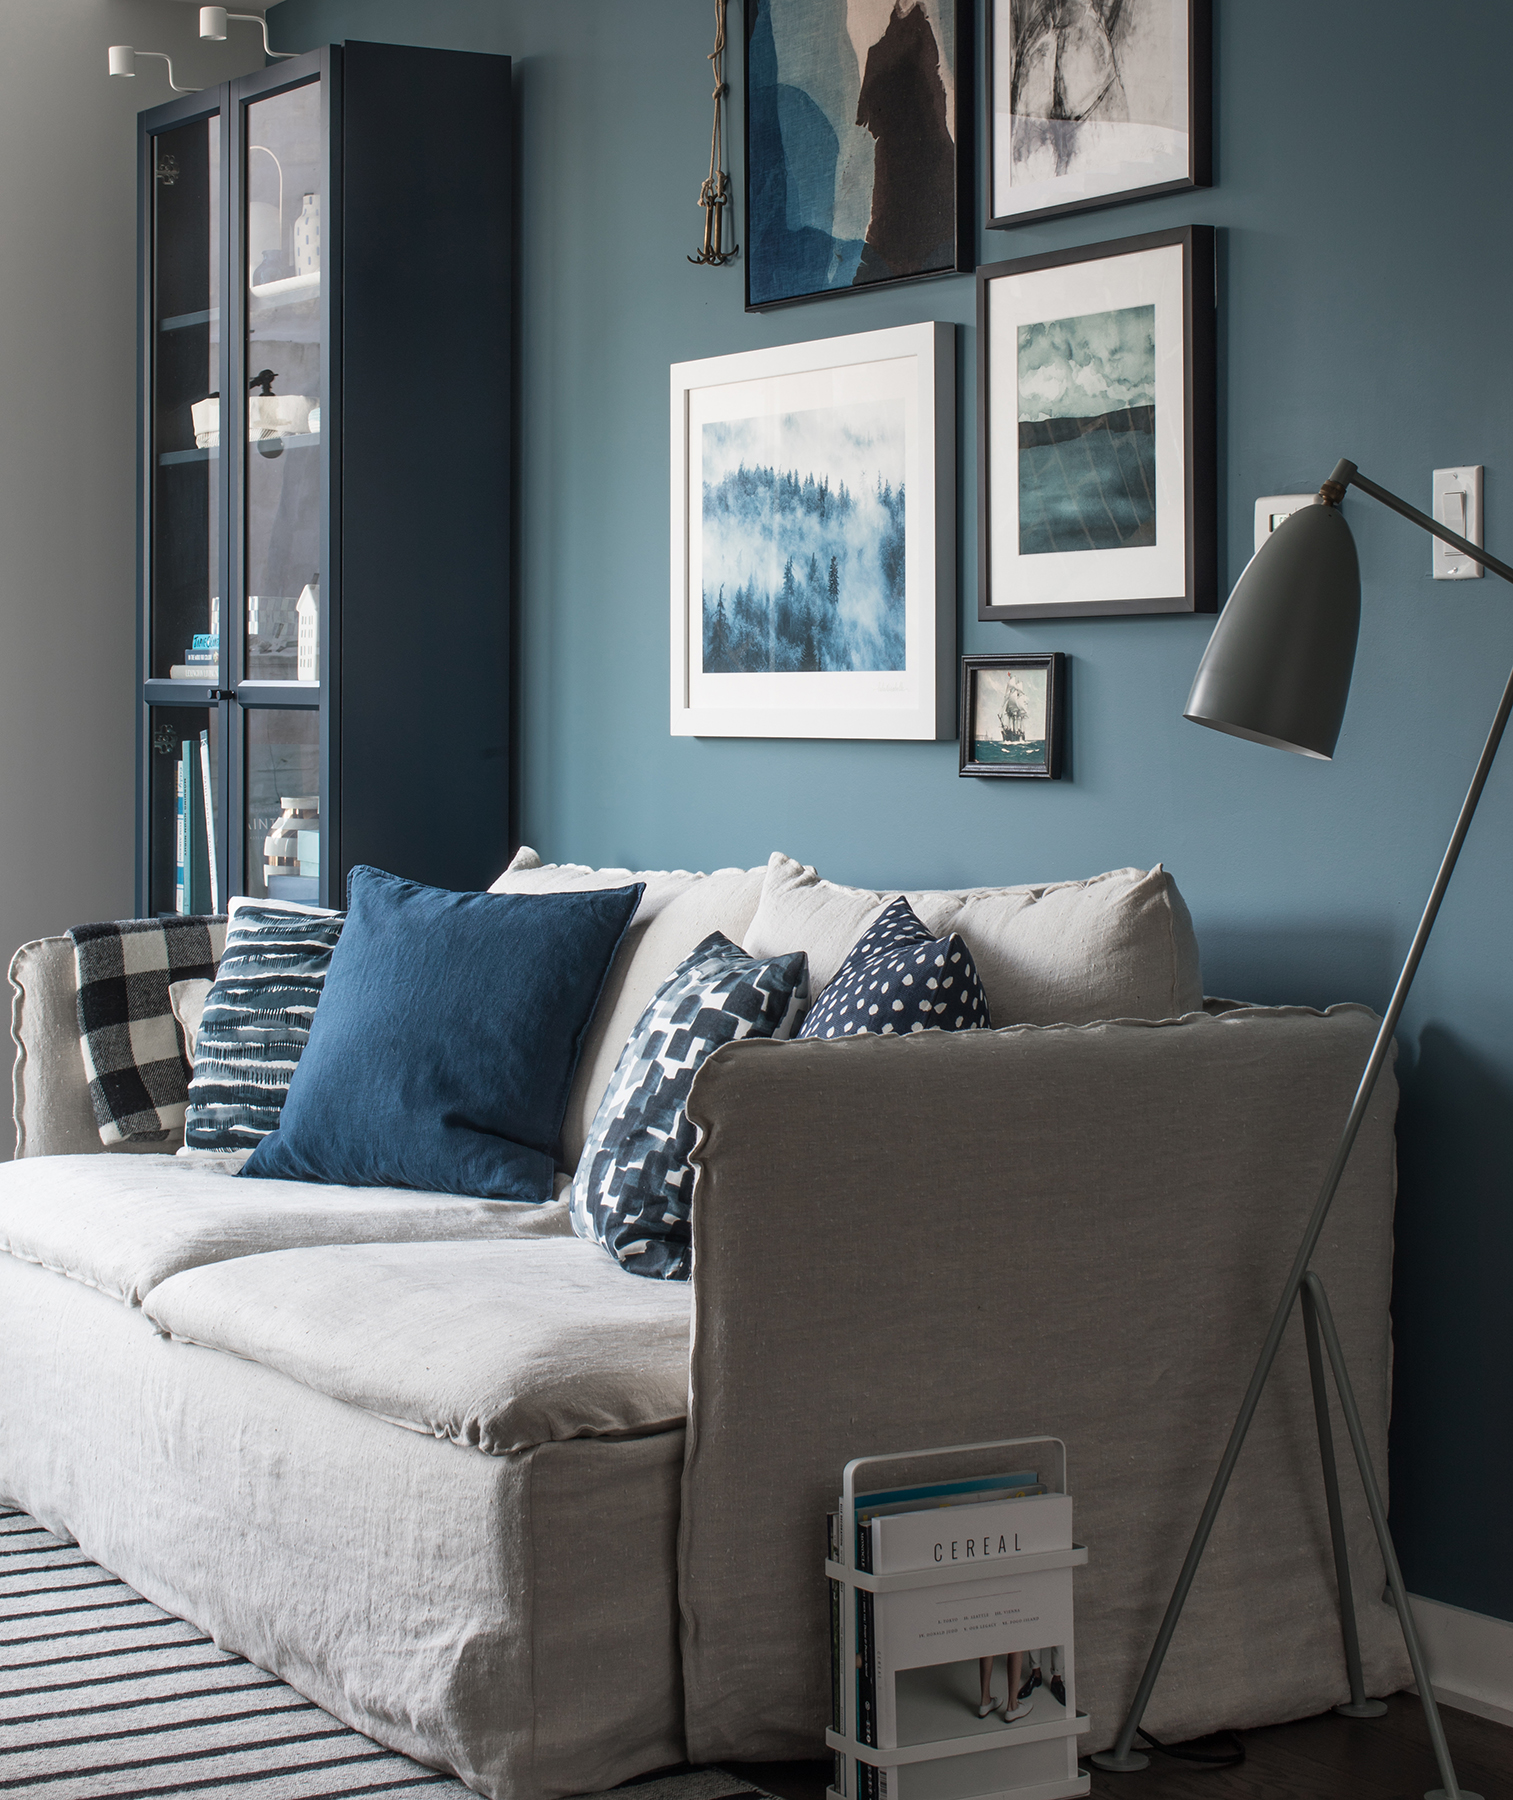 Blue and gray living room with art and throw pillows